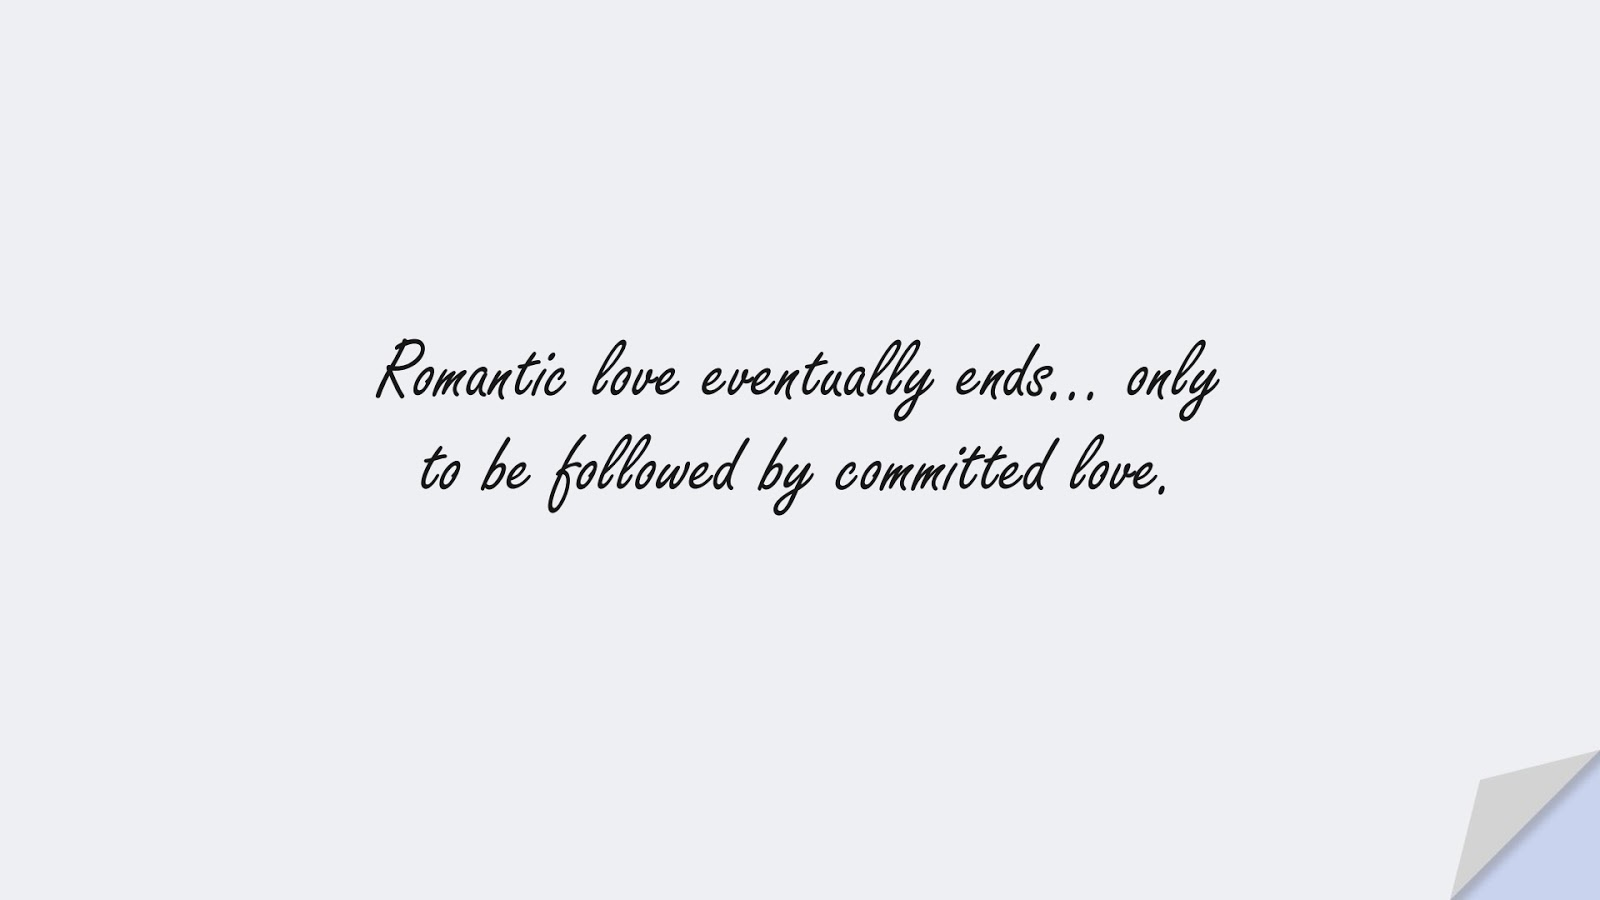 Romantic love eventually ends… only to be followed by committed love.FALSE